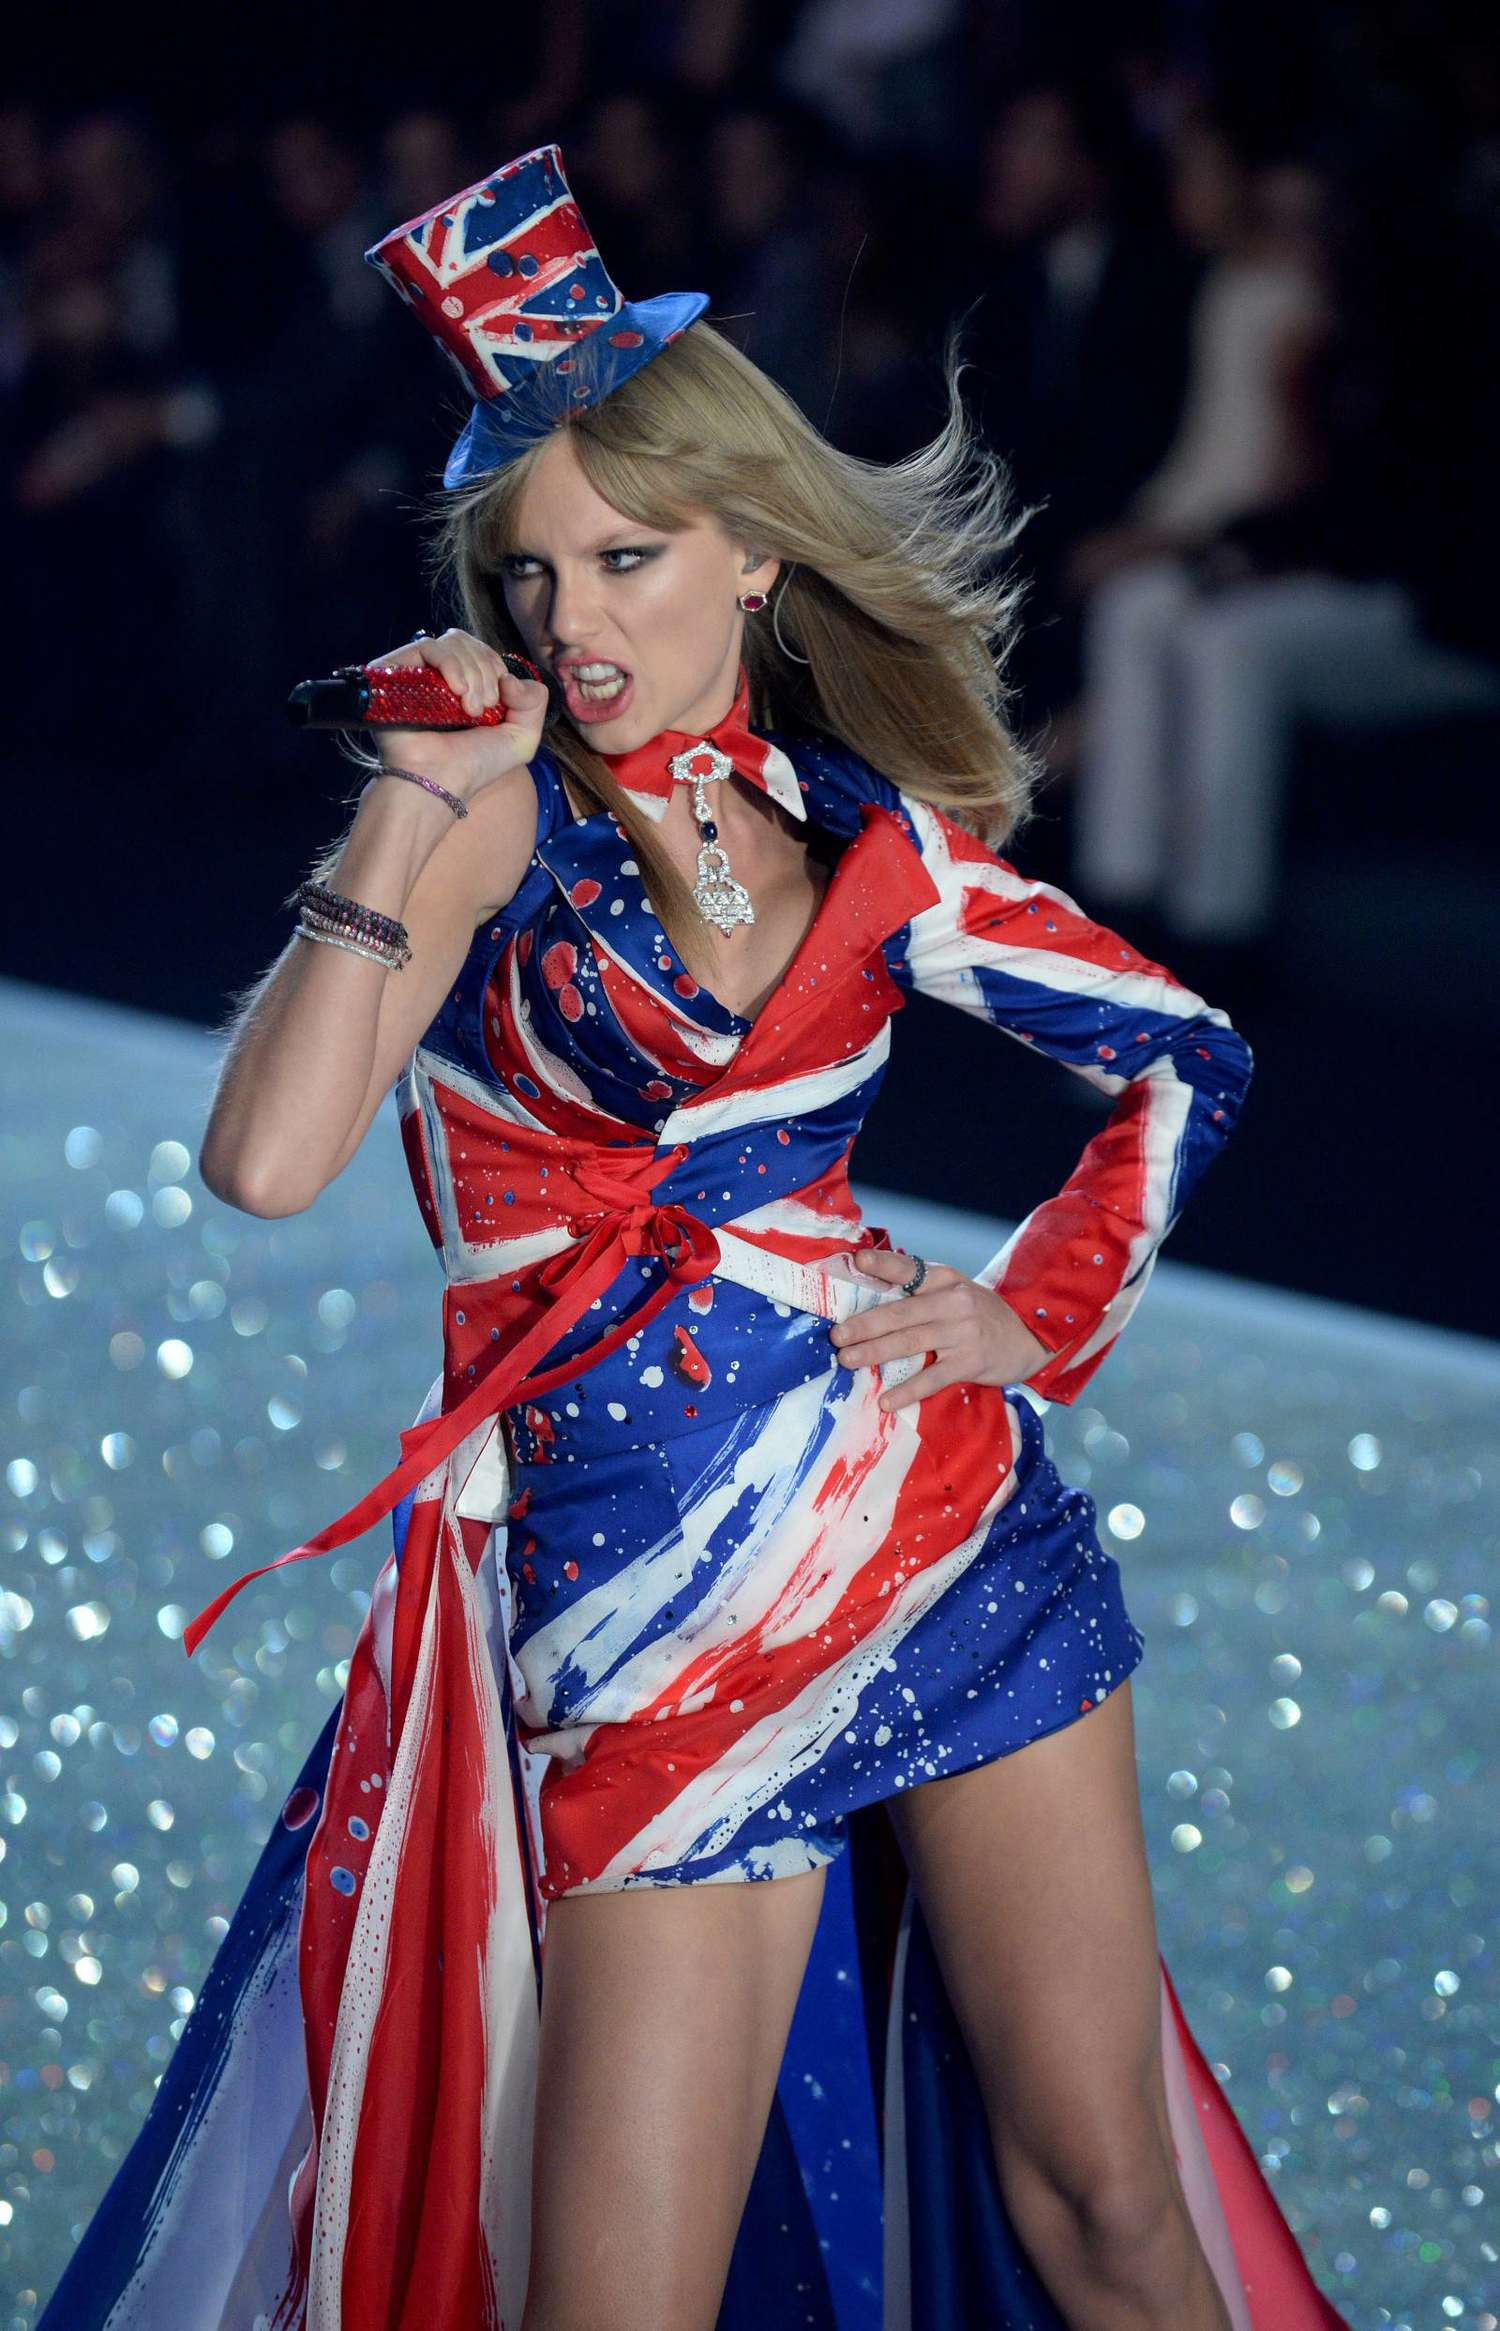 Taylor Swift 2013 Vs Fashion Show 05 Gotceleb